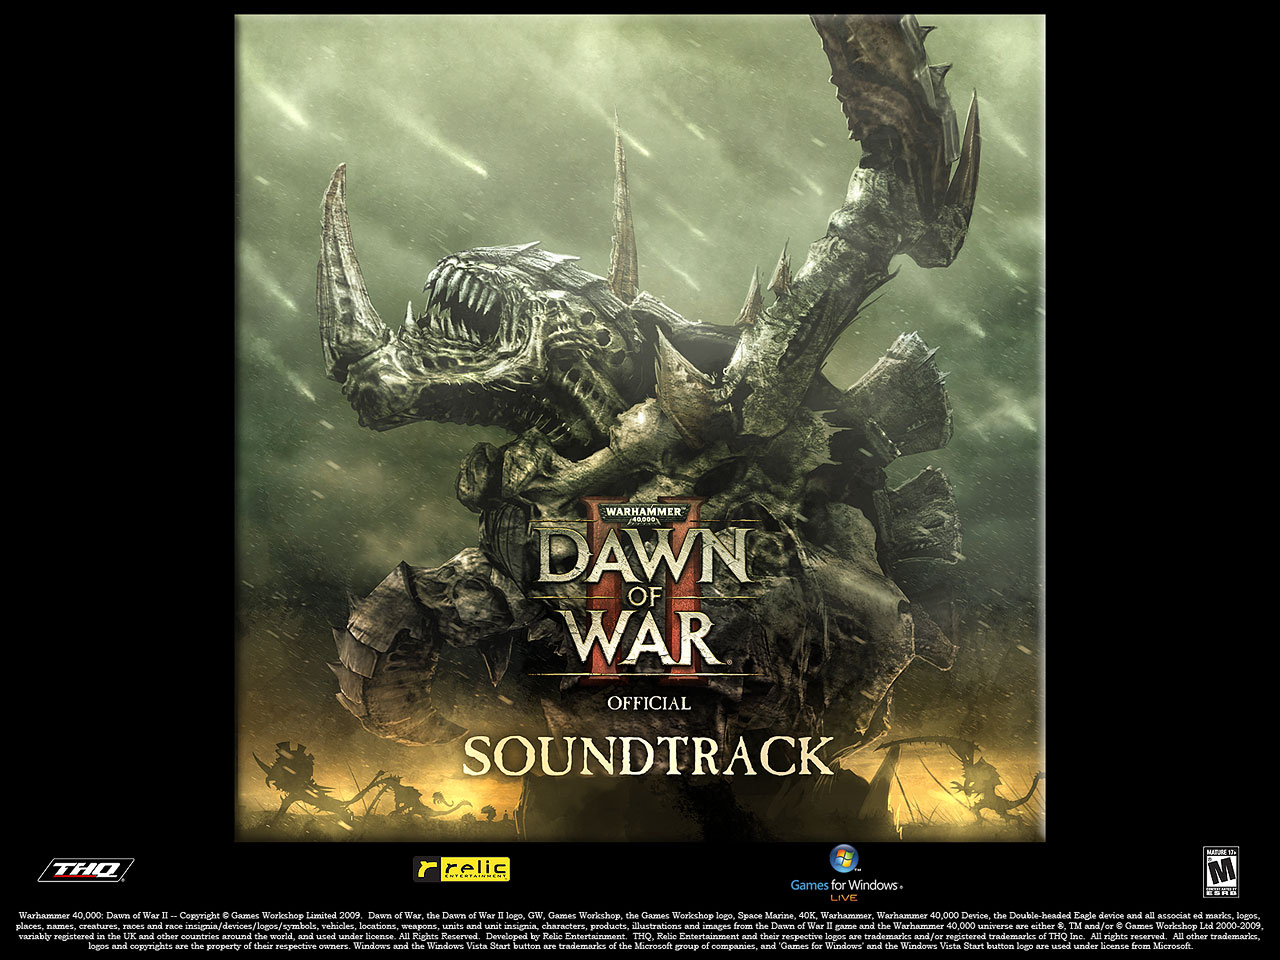 Back to Dawn of War 2 - Soundtrack downloadable for free